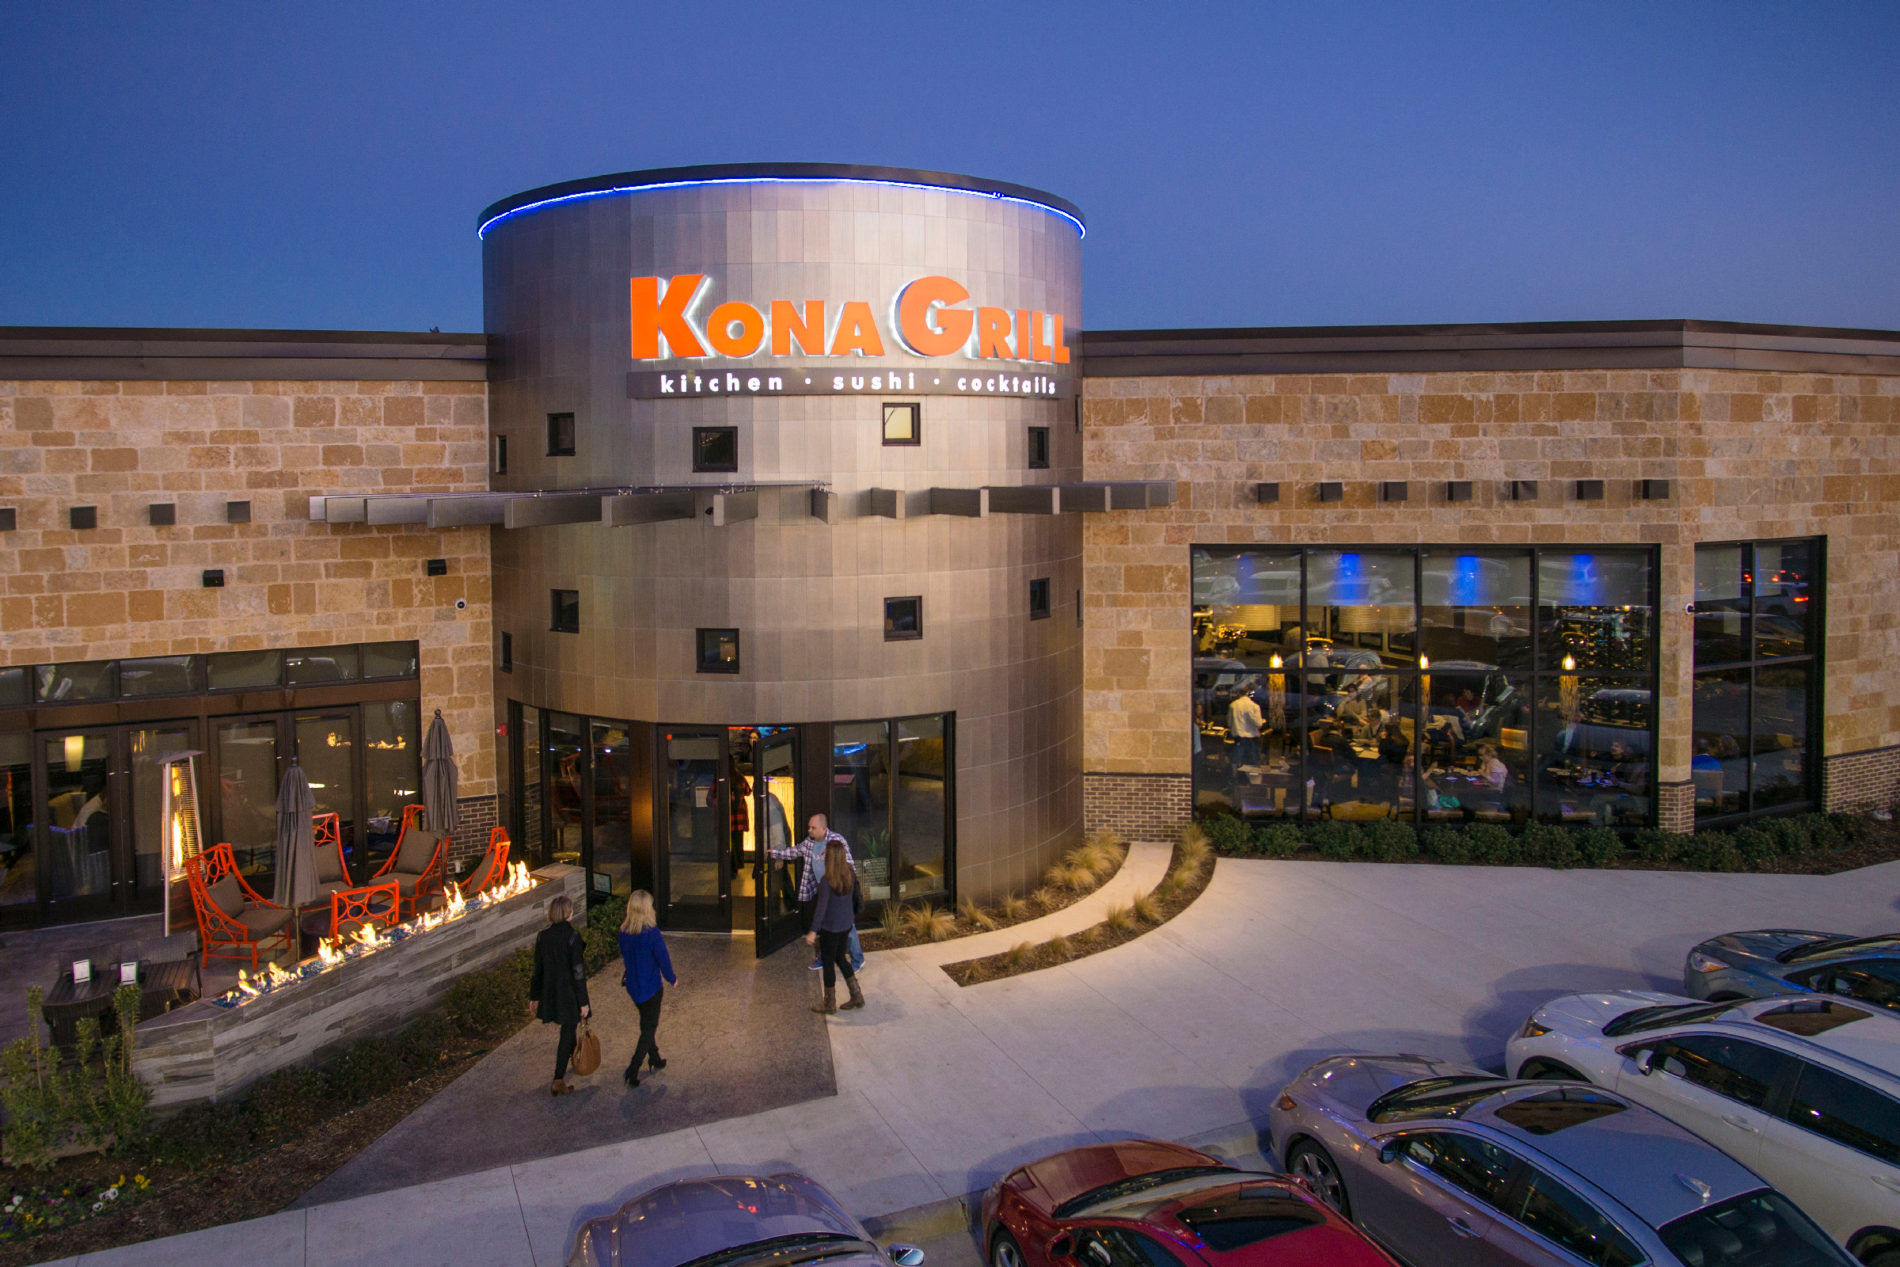 Tulsa Drone Photographer captures view of Kona Grill